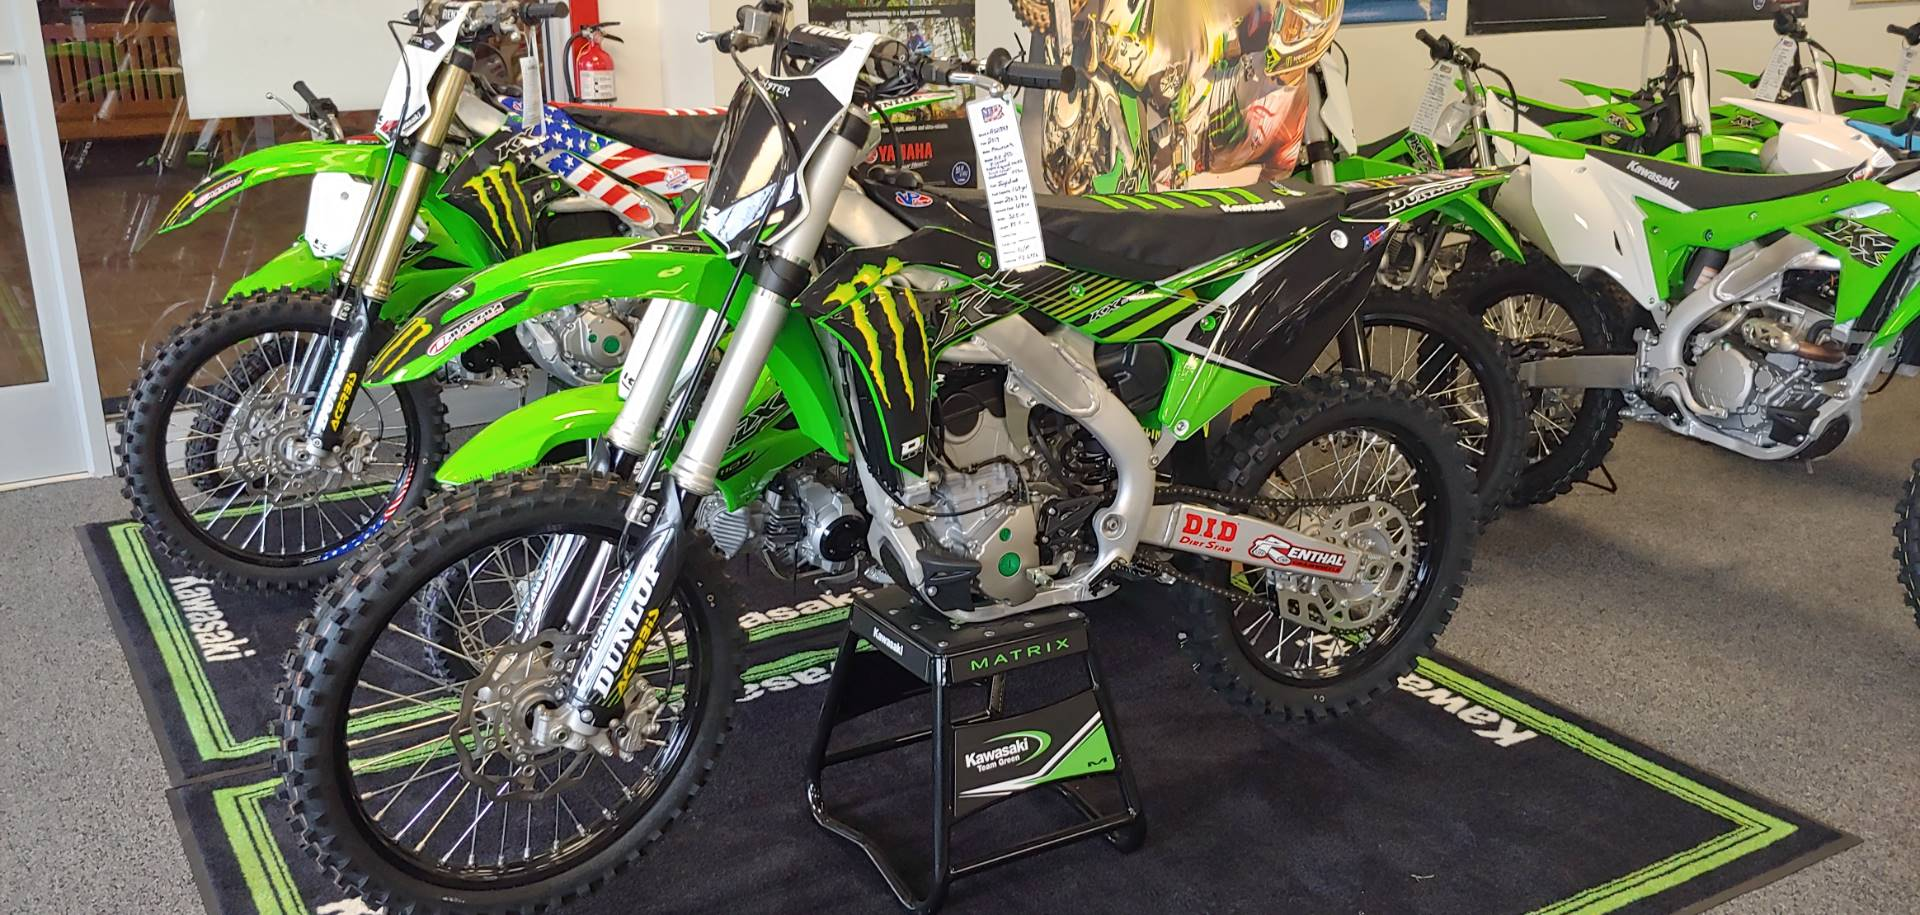 2019 Kawasaki KX 250 for sale 6935